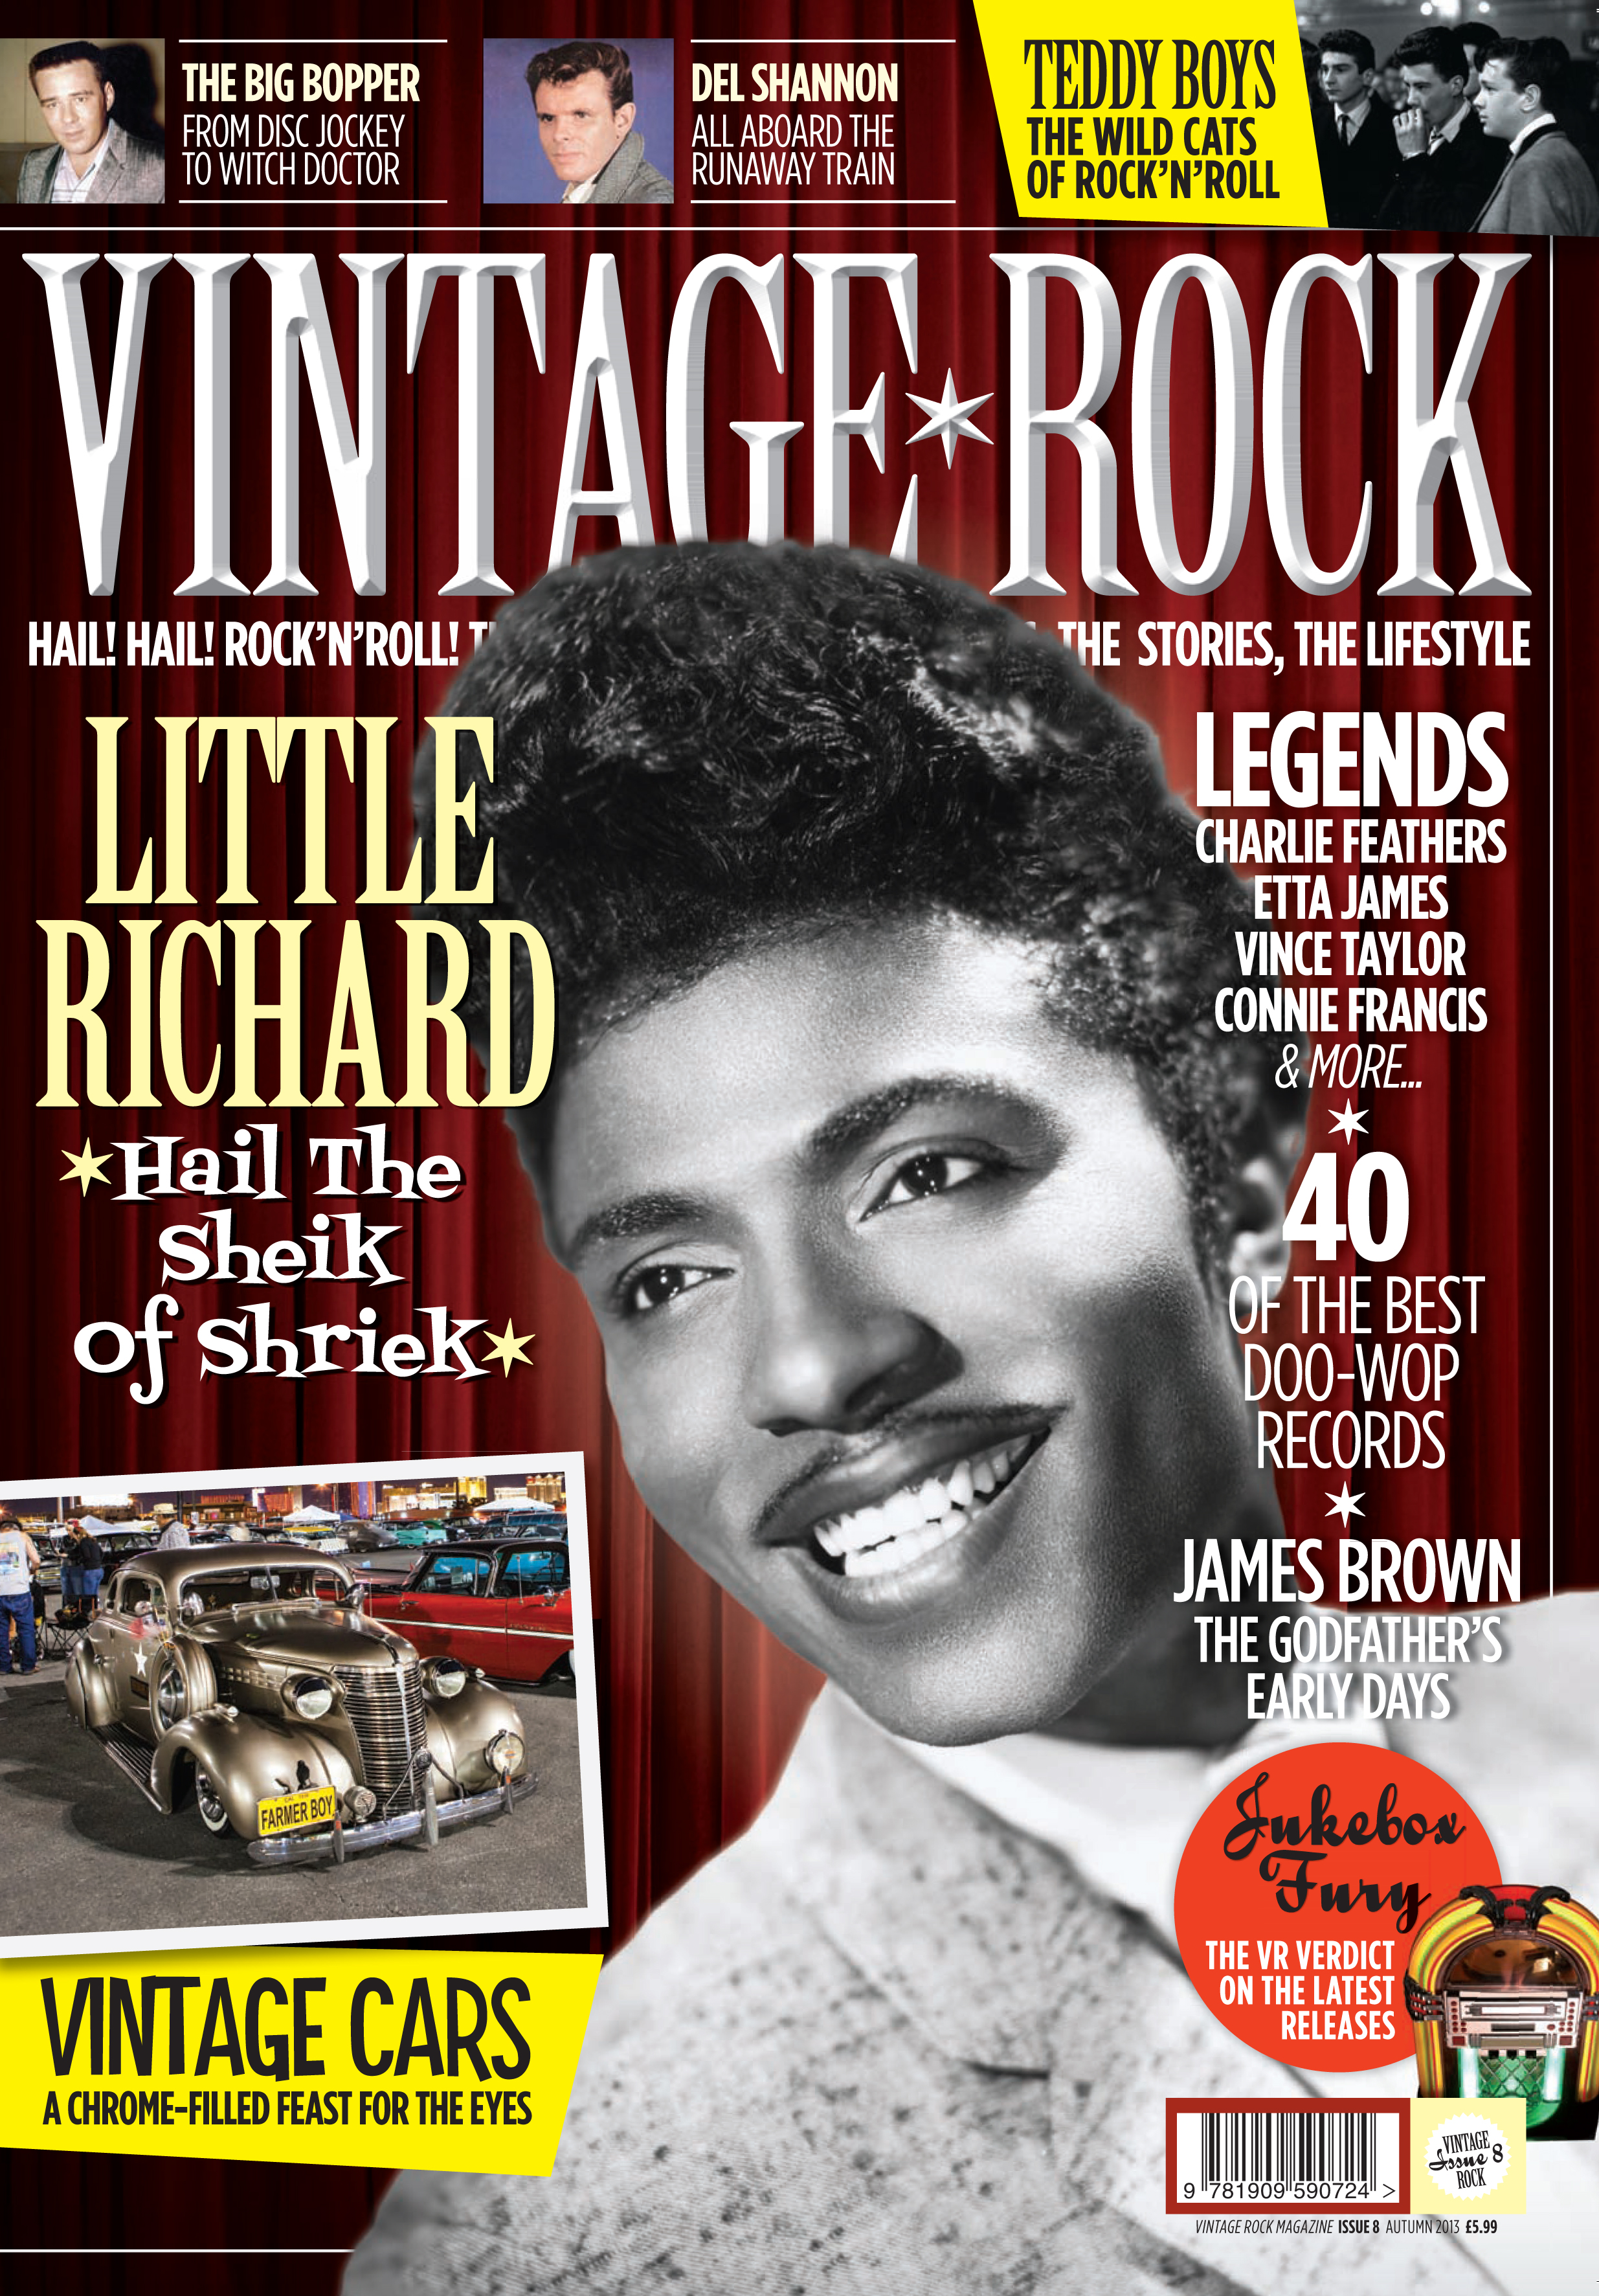 Vintage Rock Issue 8 Is On Sale Now!